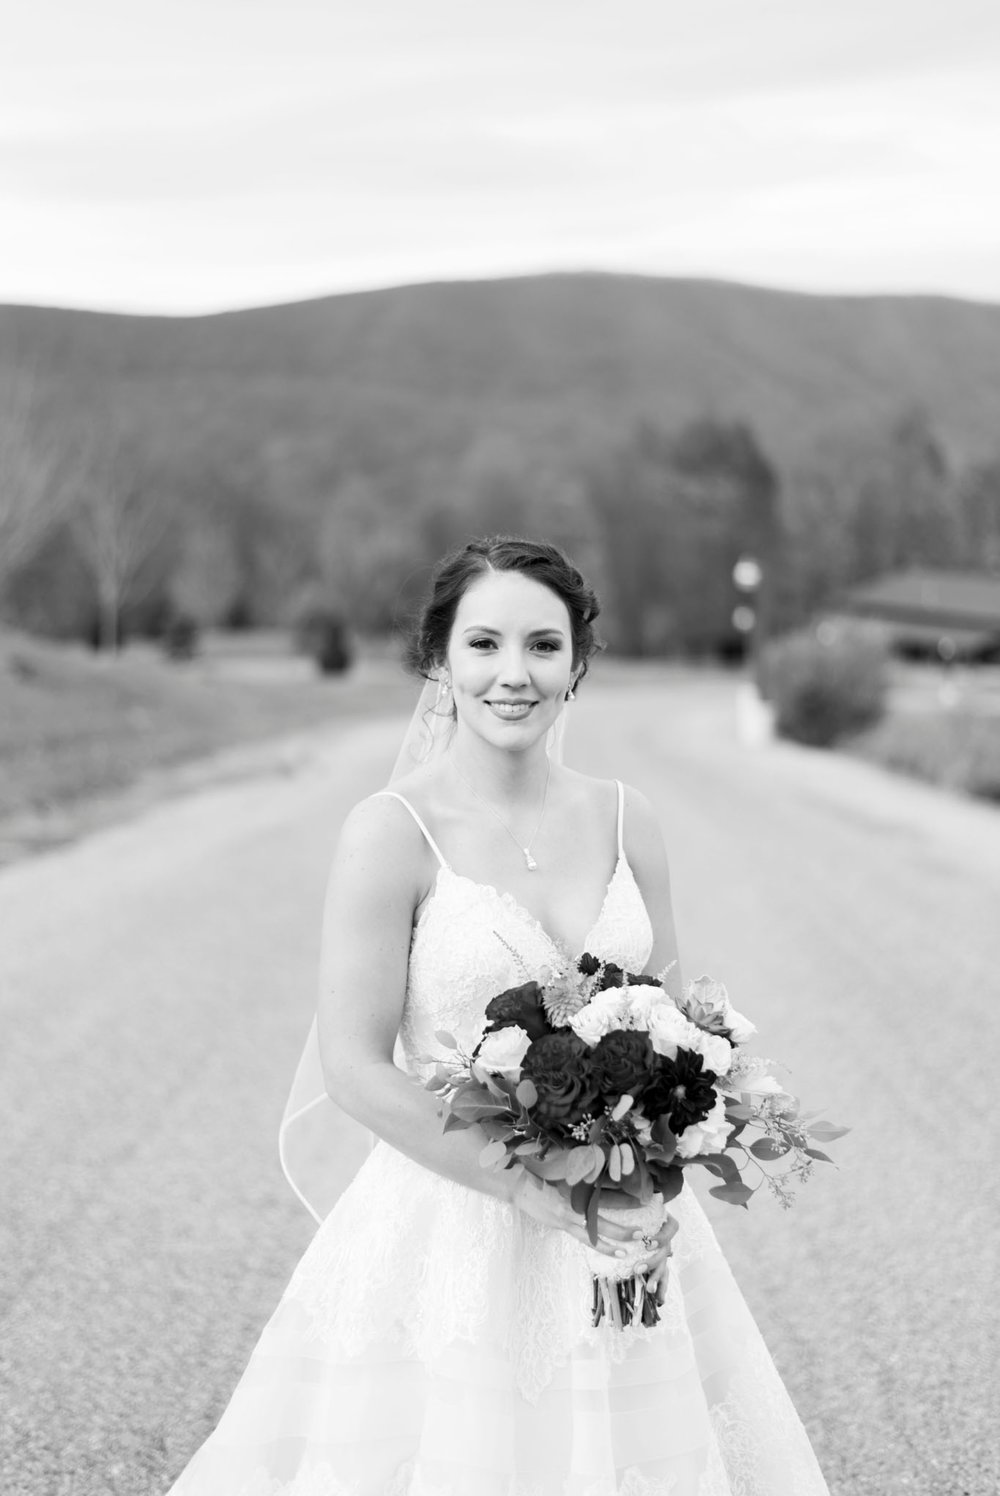 IrvineEstate_LexingtonVA_Wedding_FallWedding_VirginiaWeddingPhotographer 44.jpg